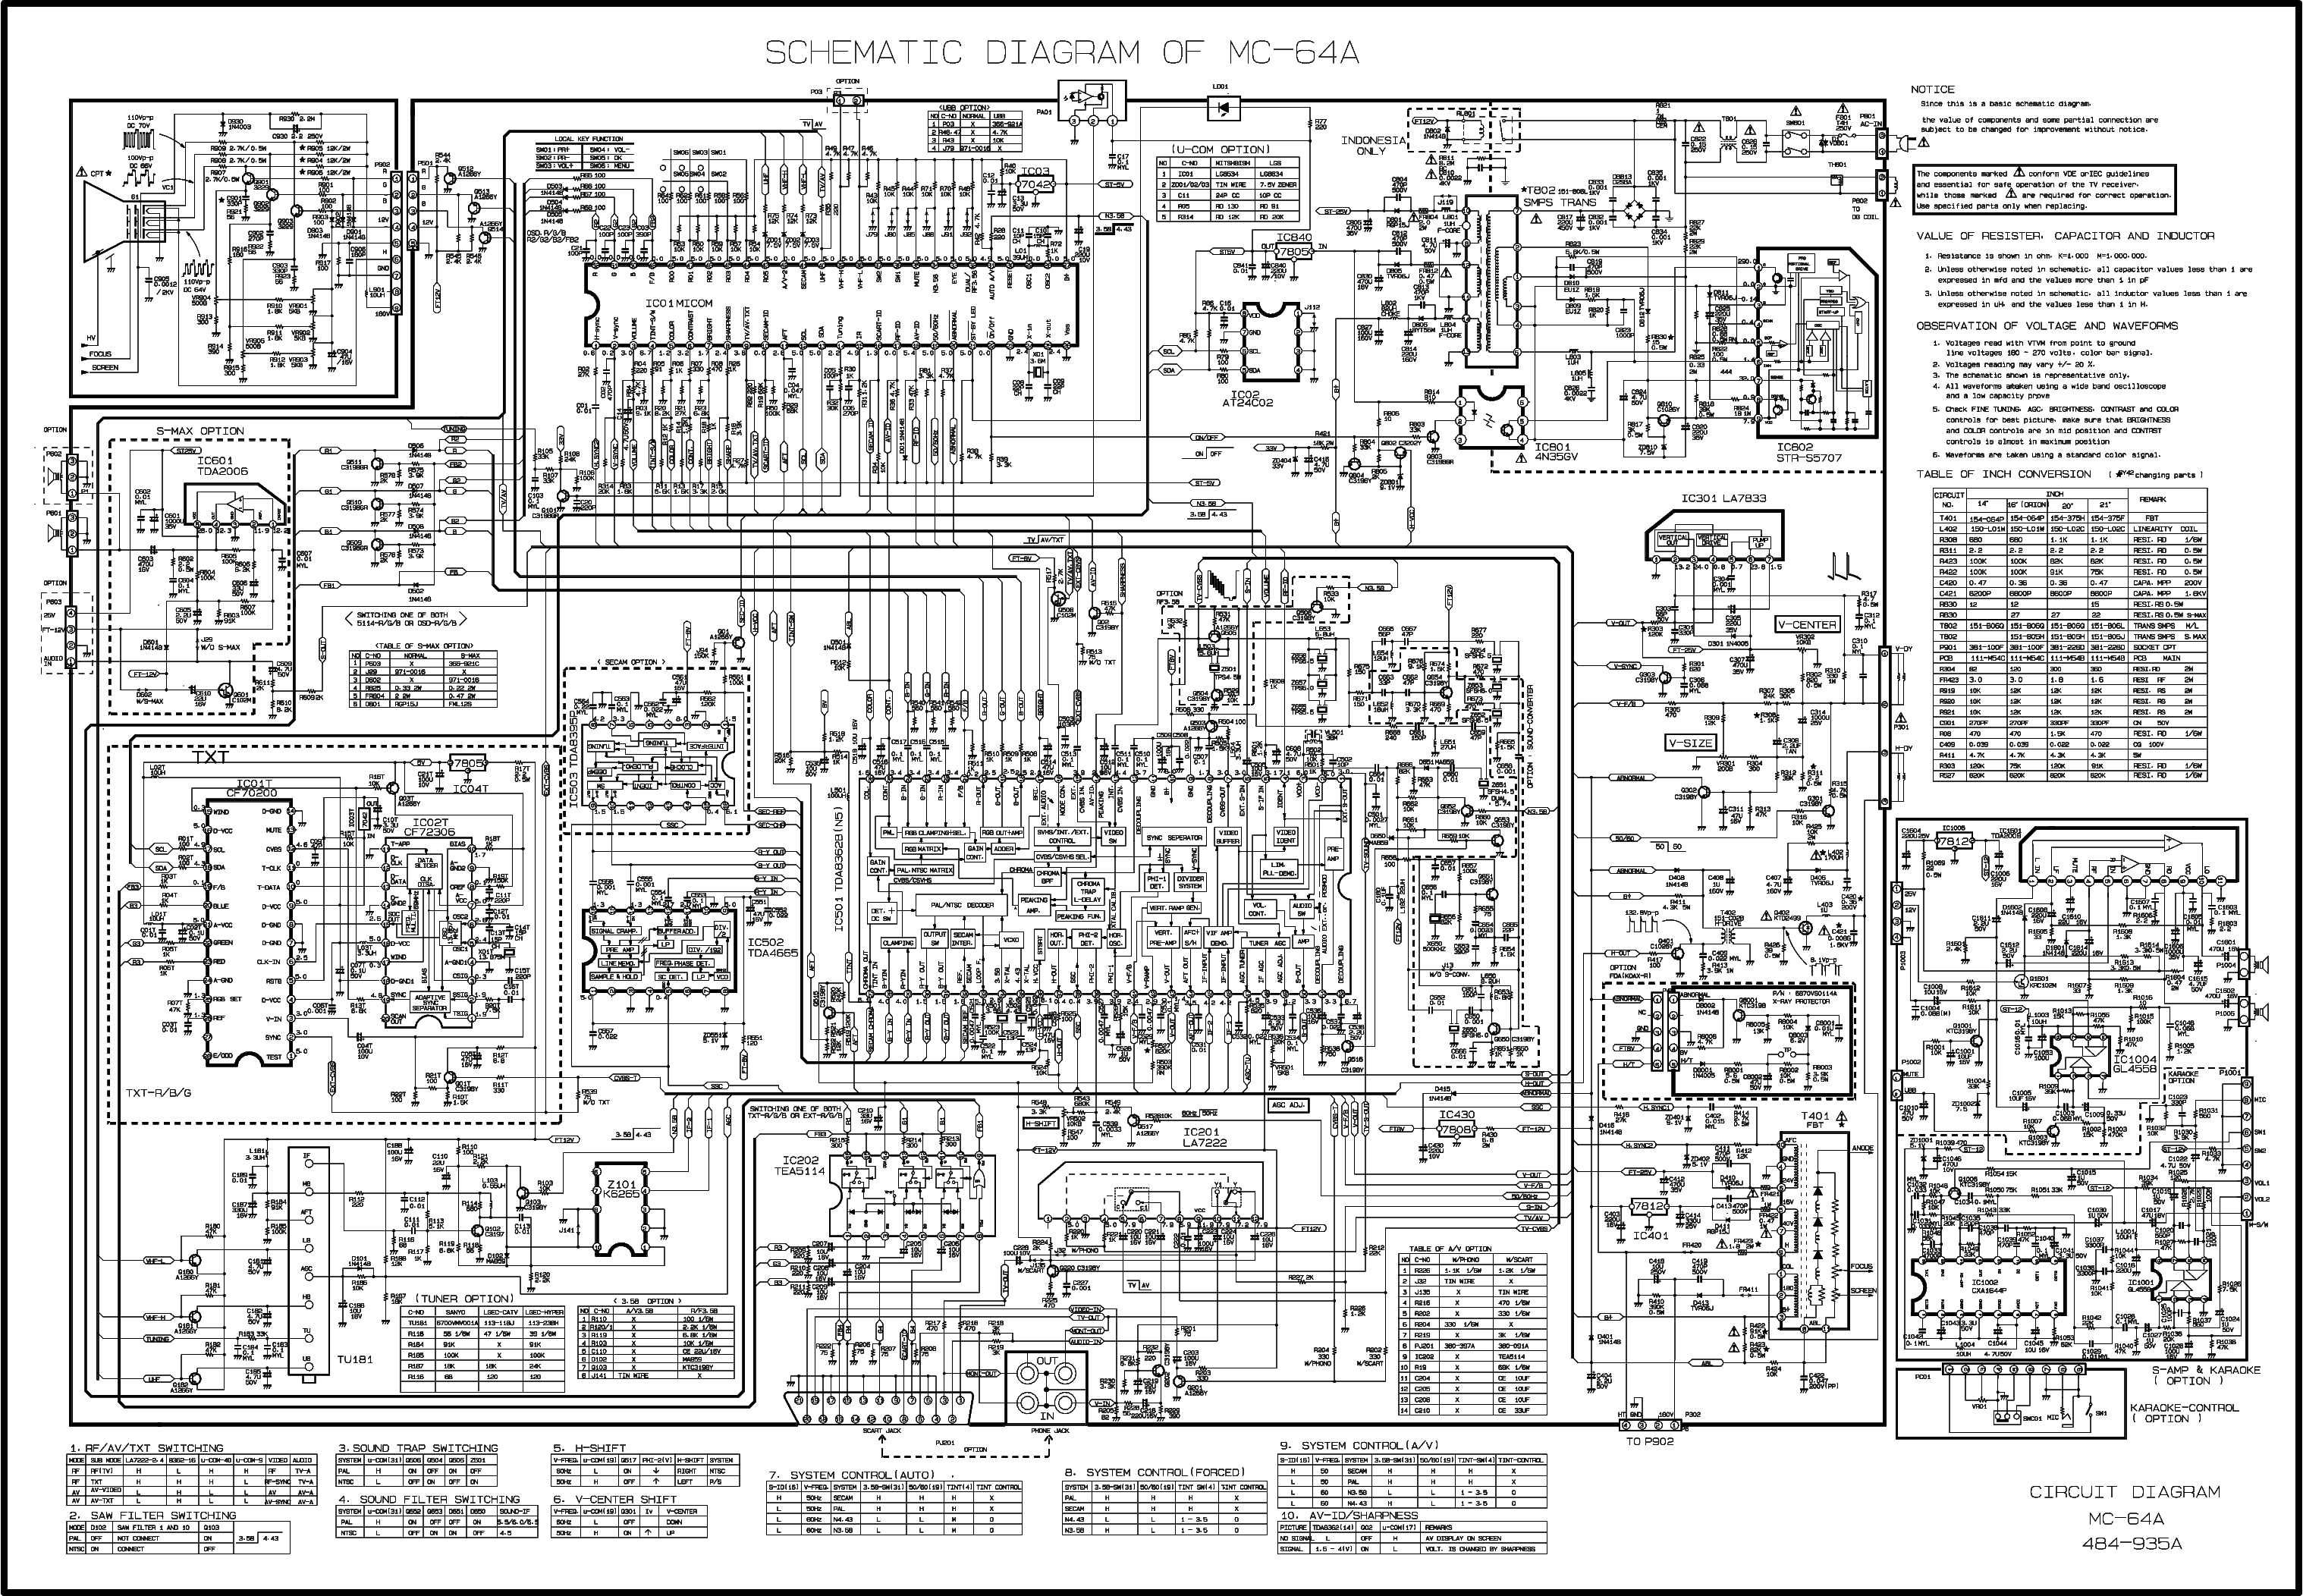 lg 47le5400 lcd tv schematic diagram wiring diagram libraries lg 47le5400 lcd tv schematic diagram wiring diagrams u2022lg 47le5400 lcd tv schematic diagram images